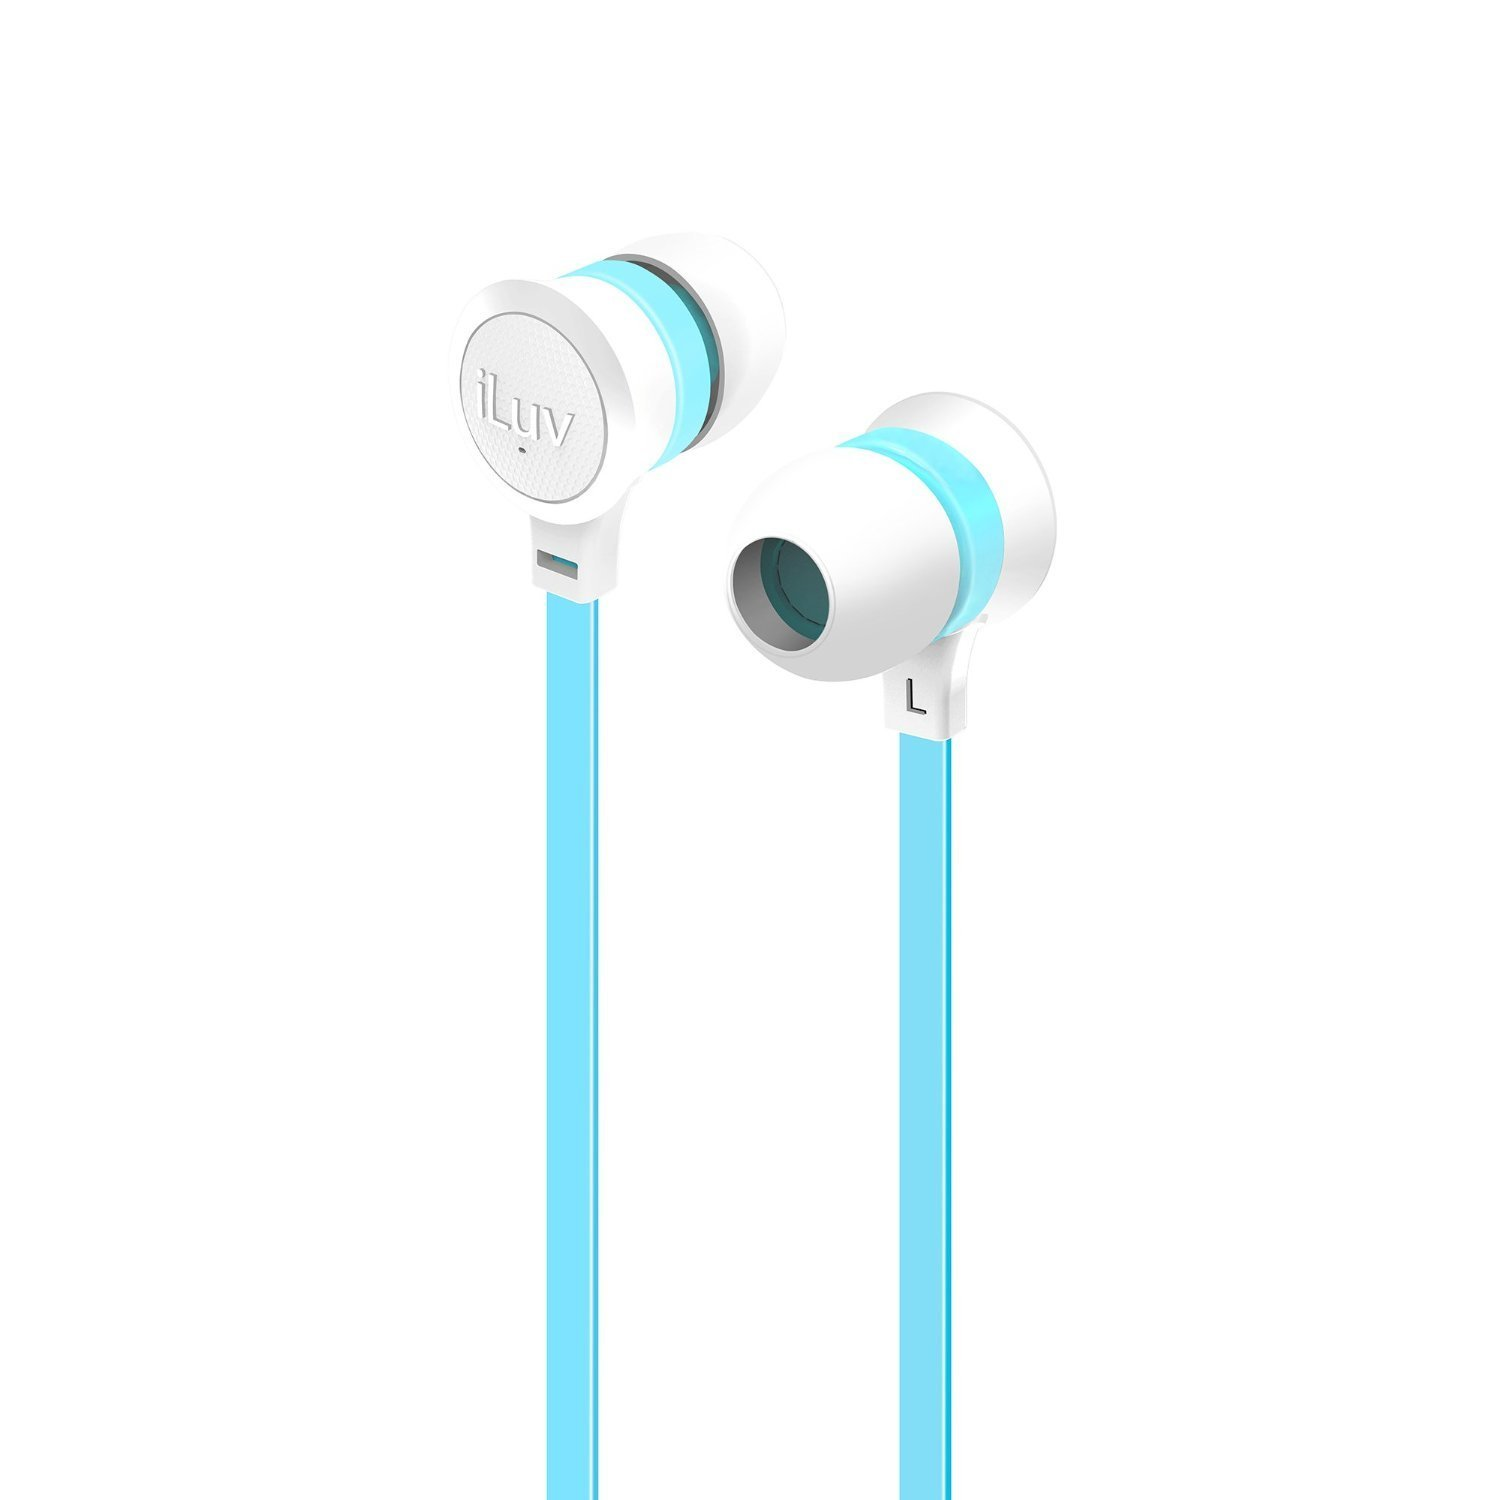 iLuv IEP334WBLN Neon Sound High-Performance Earphones White Blue